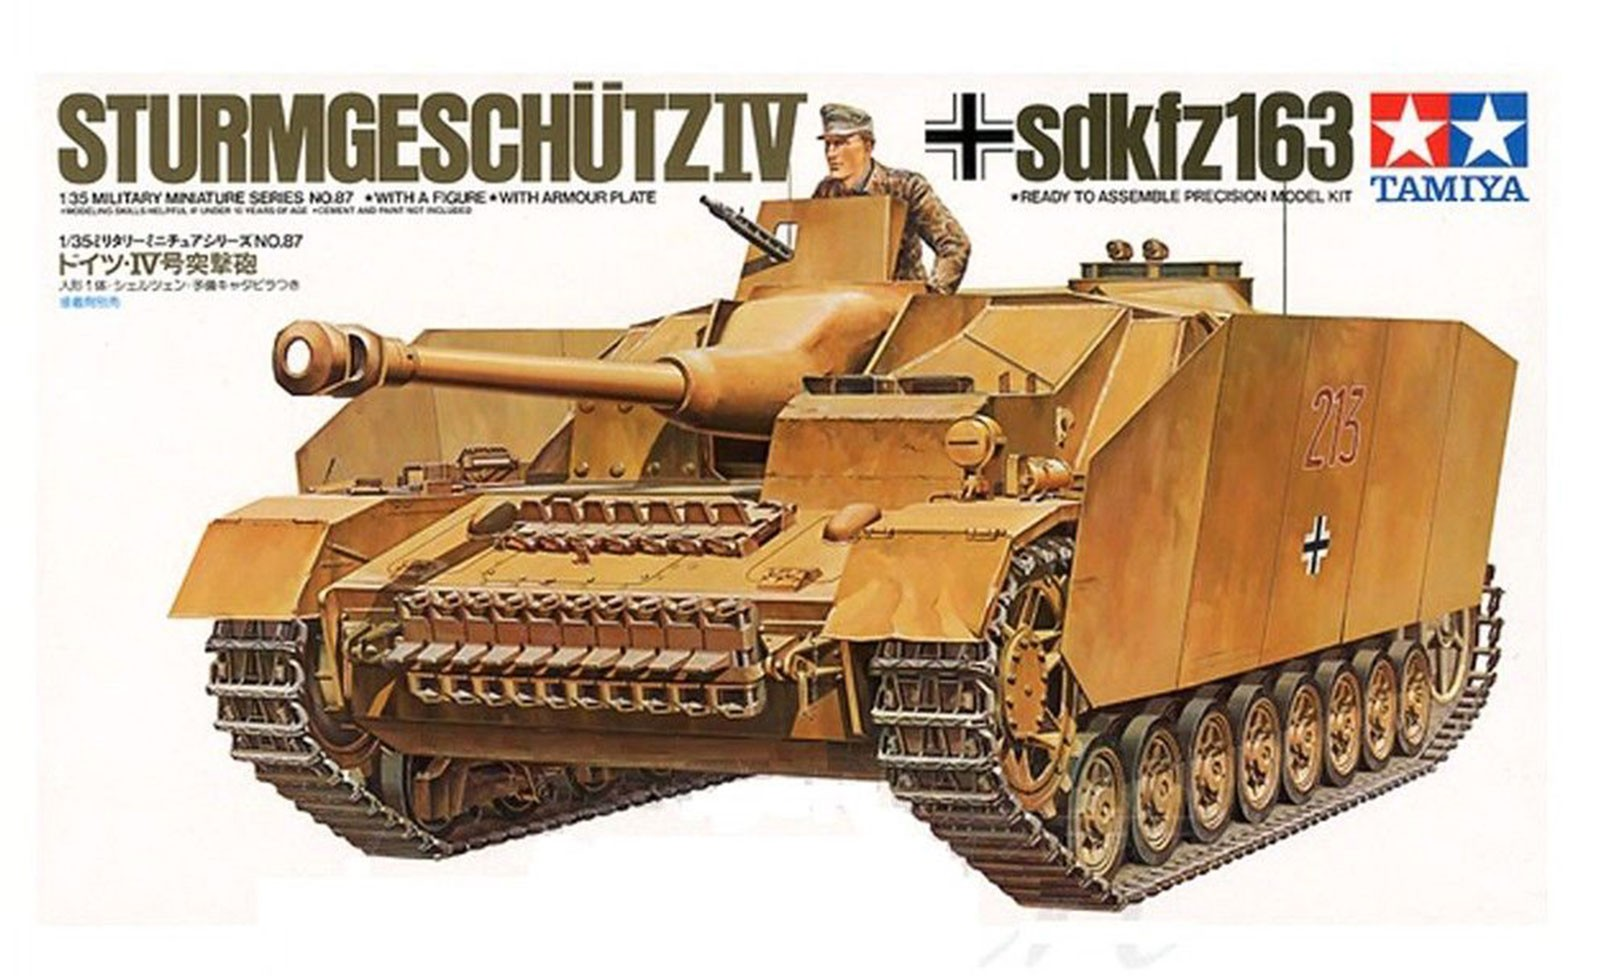 German Sturmgeschutz IV Kit - CA187 - Tamiya 35087 - plastic model kit - 1/35 scale